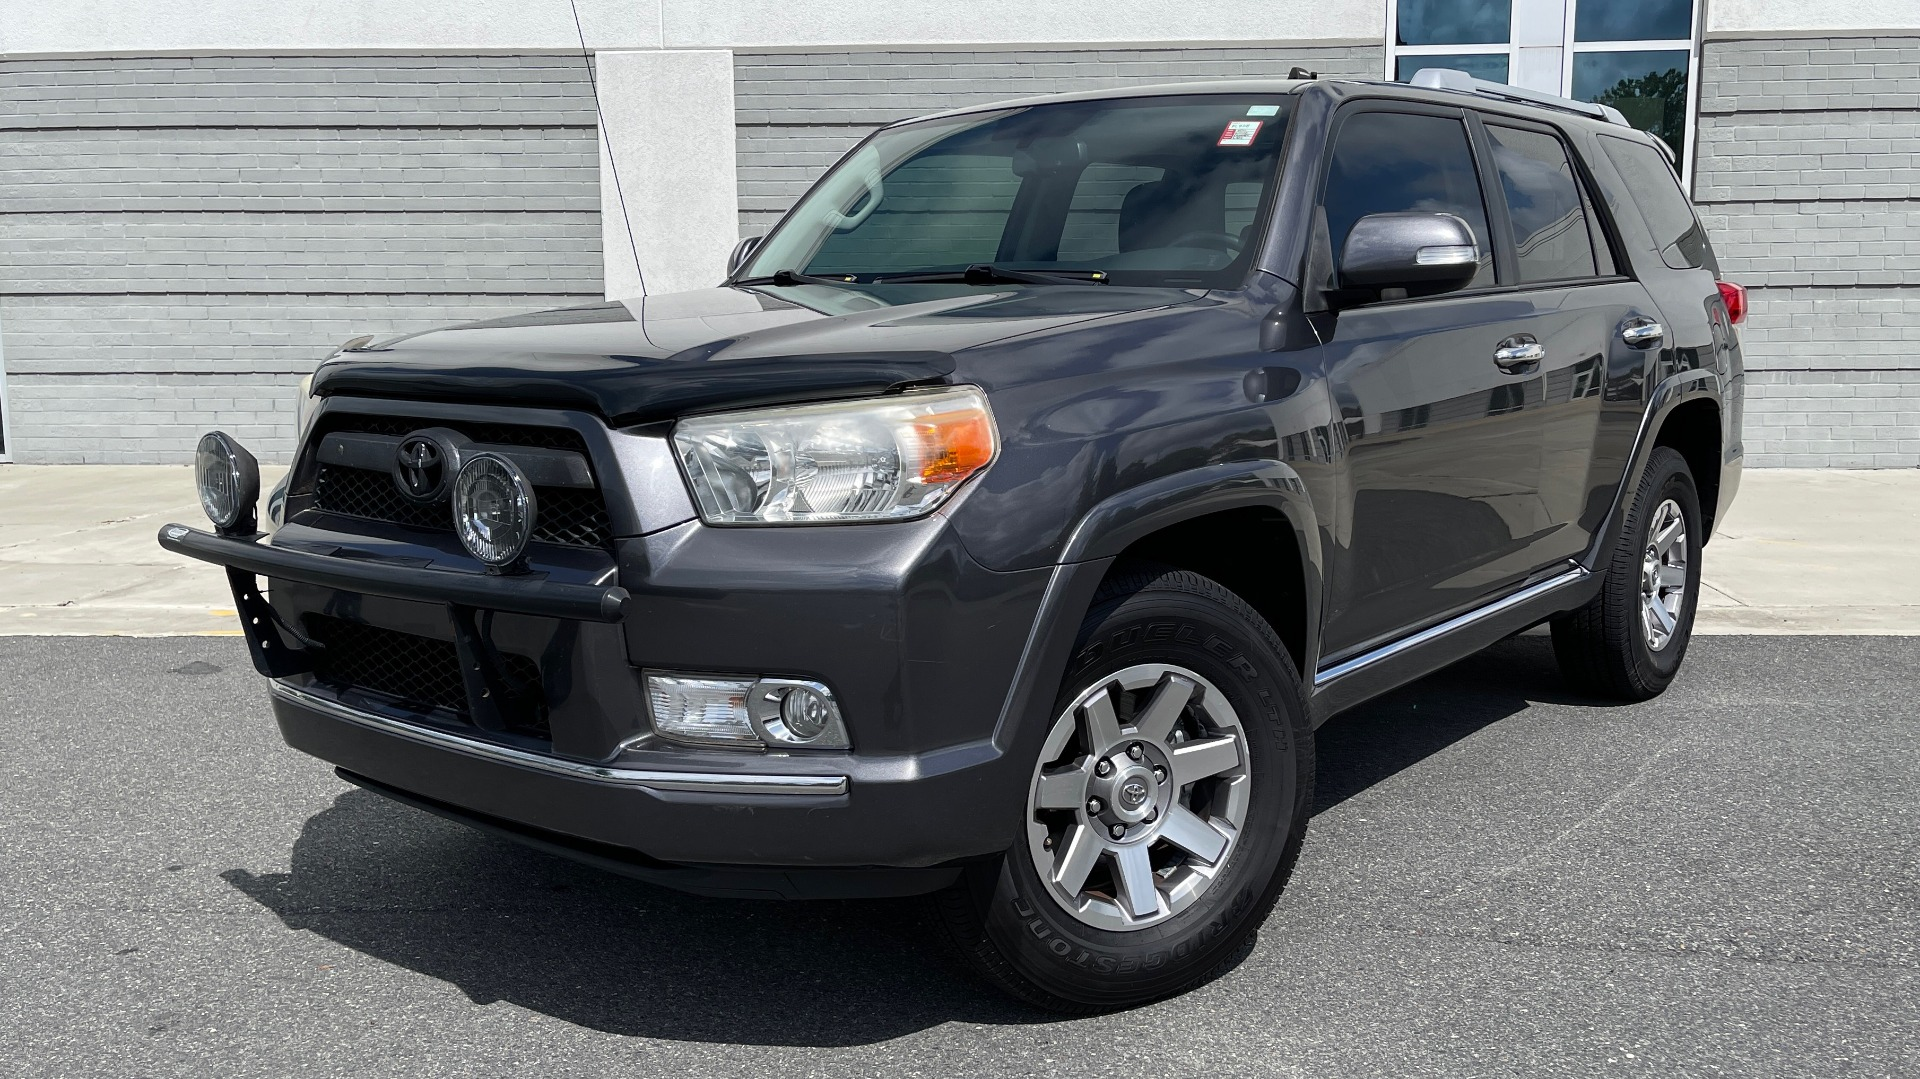 Used 2011 Toyota 4RUNNER SR5 4X4 V6 / 5-SPD AUTO / SUNROOF / POWER FRONT SEATS for sale $19,999 at Formula Imports in Charlotte NC 28227 1